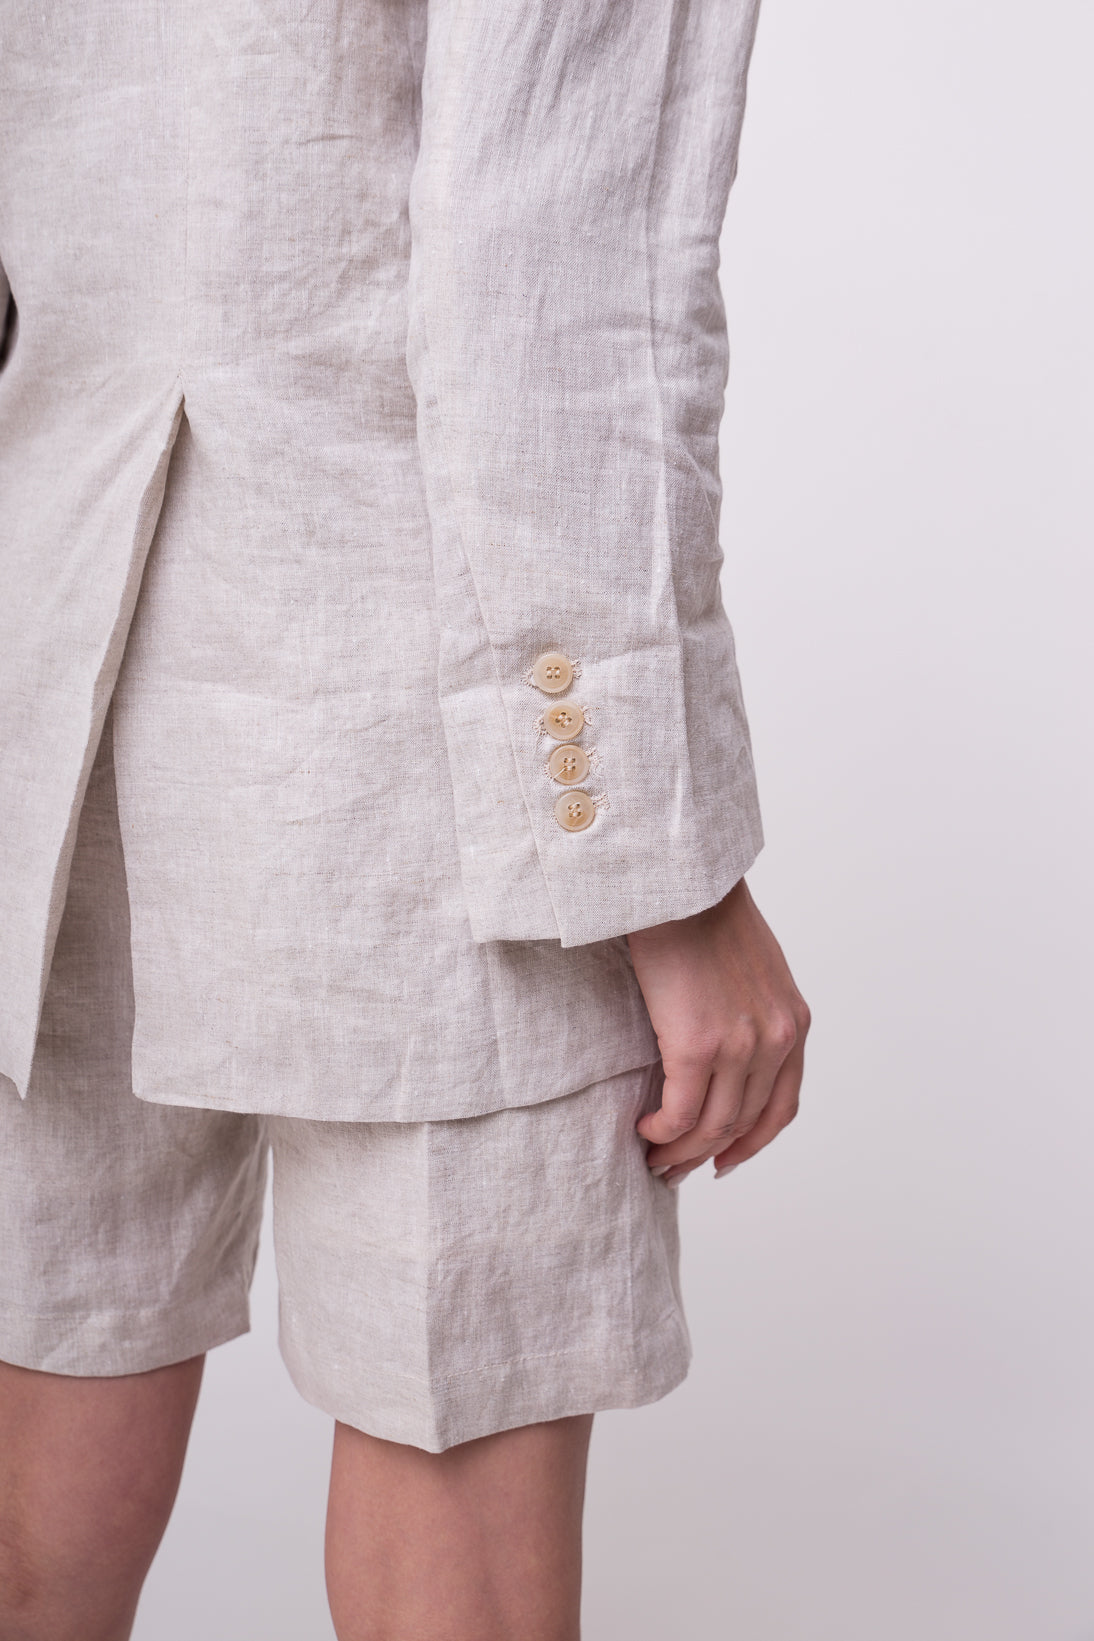 Light weight cotton suit jacket.